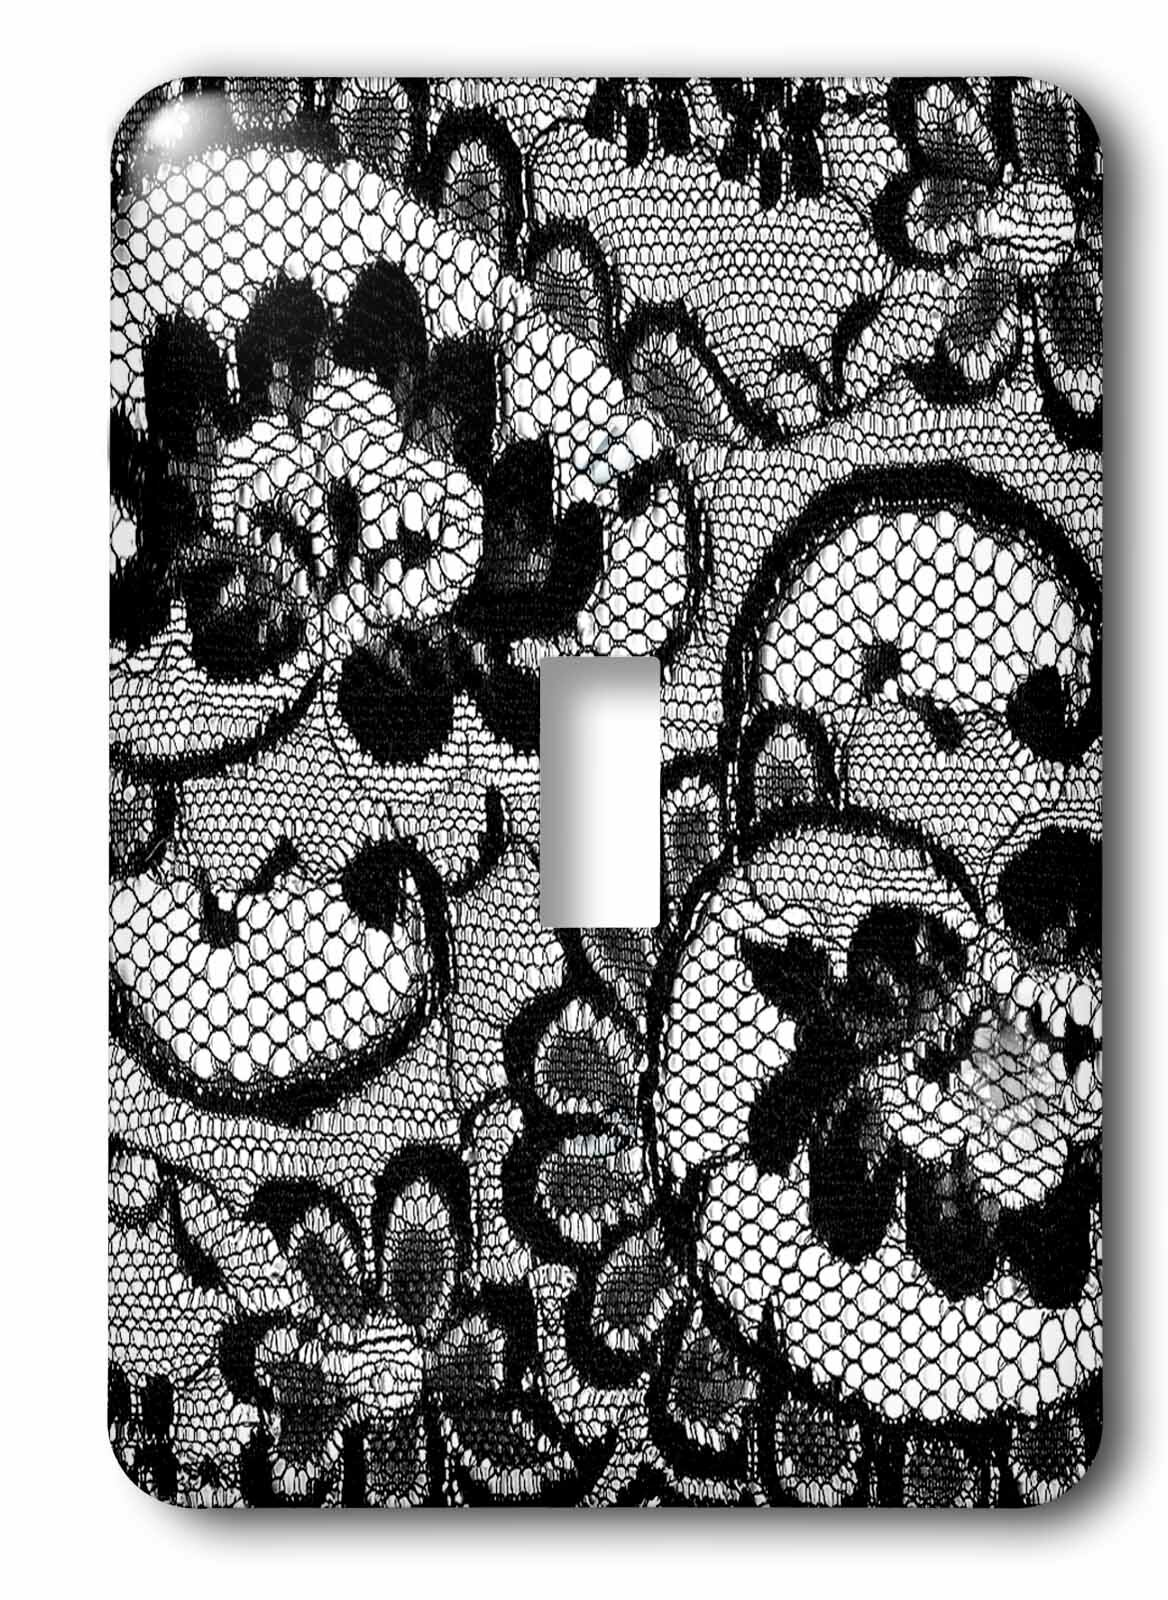 3drose Sassy Lace Print Perfect For Bachelorette Or Lingerie Parties Single Toggle Light Switch Wayfair